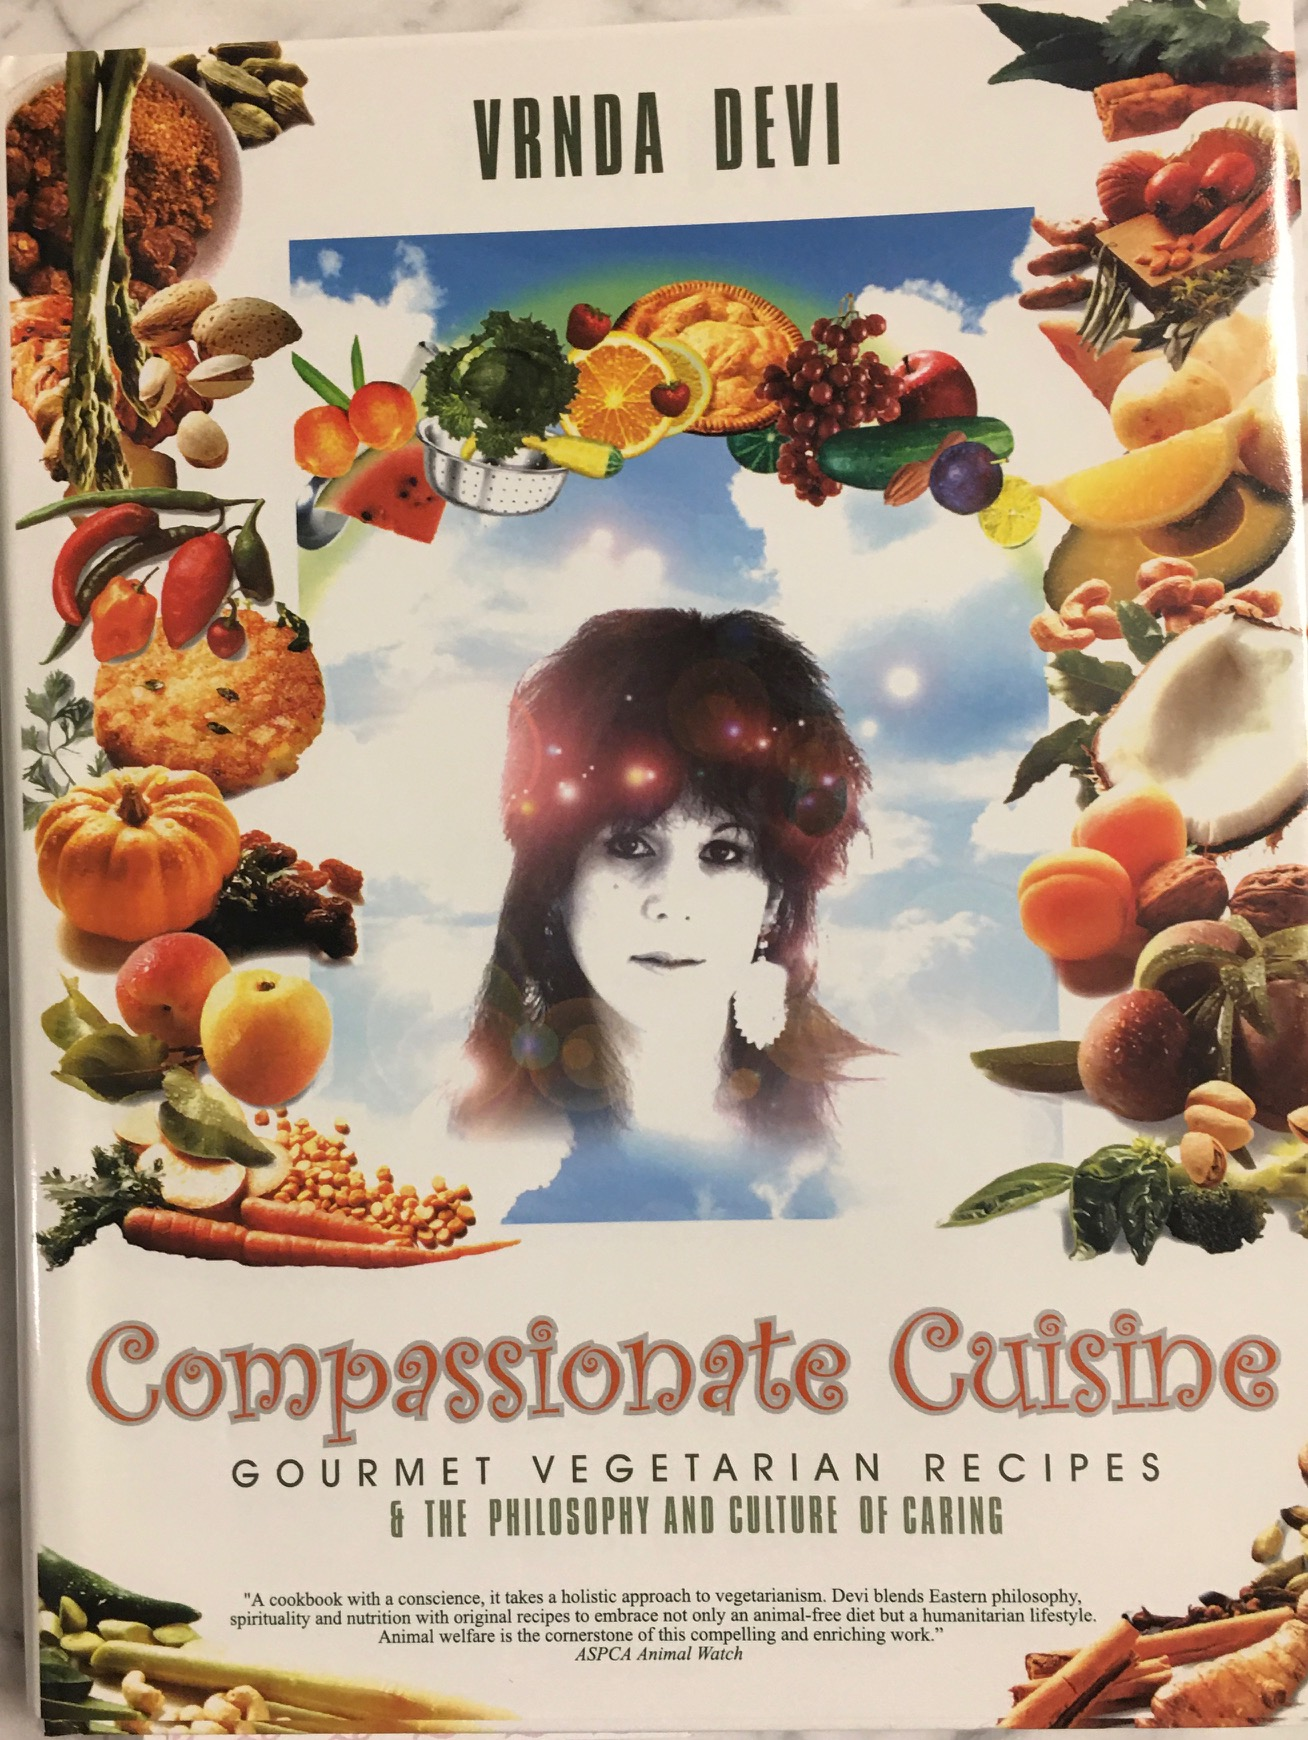 Image for Compassionate Cuisine Gourmet Vegetarian Recipes & The Philosophy and Culture of Caring (A Cookbook with a Conscience)